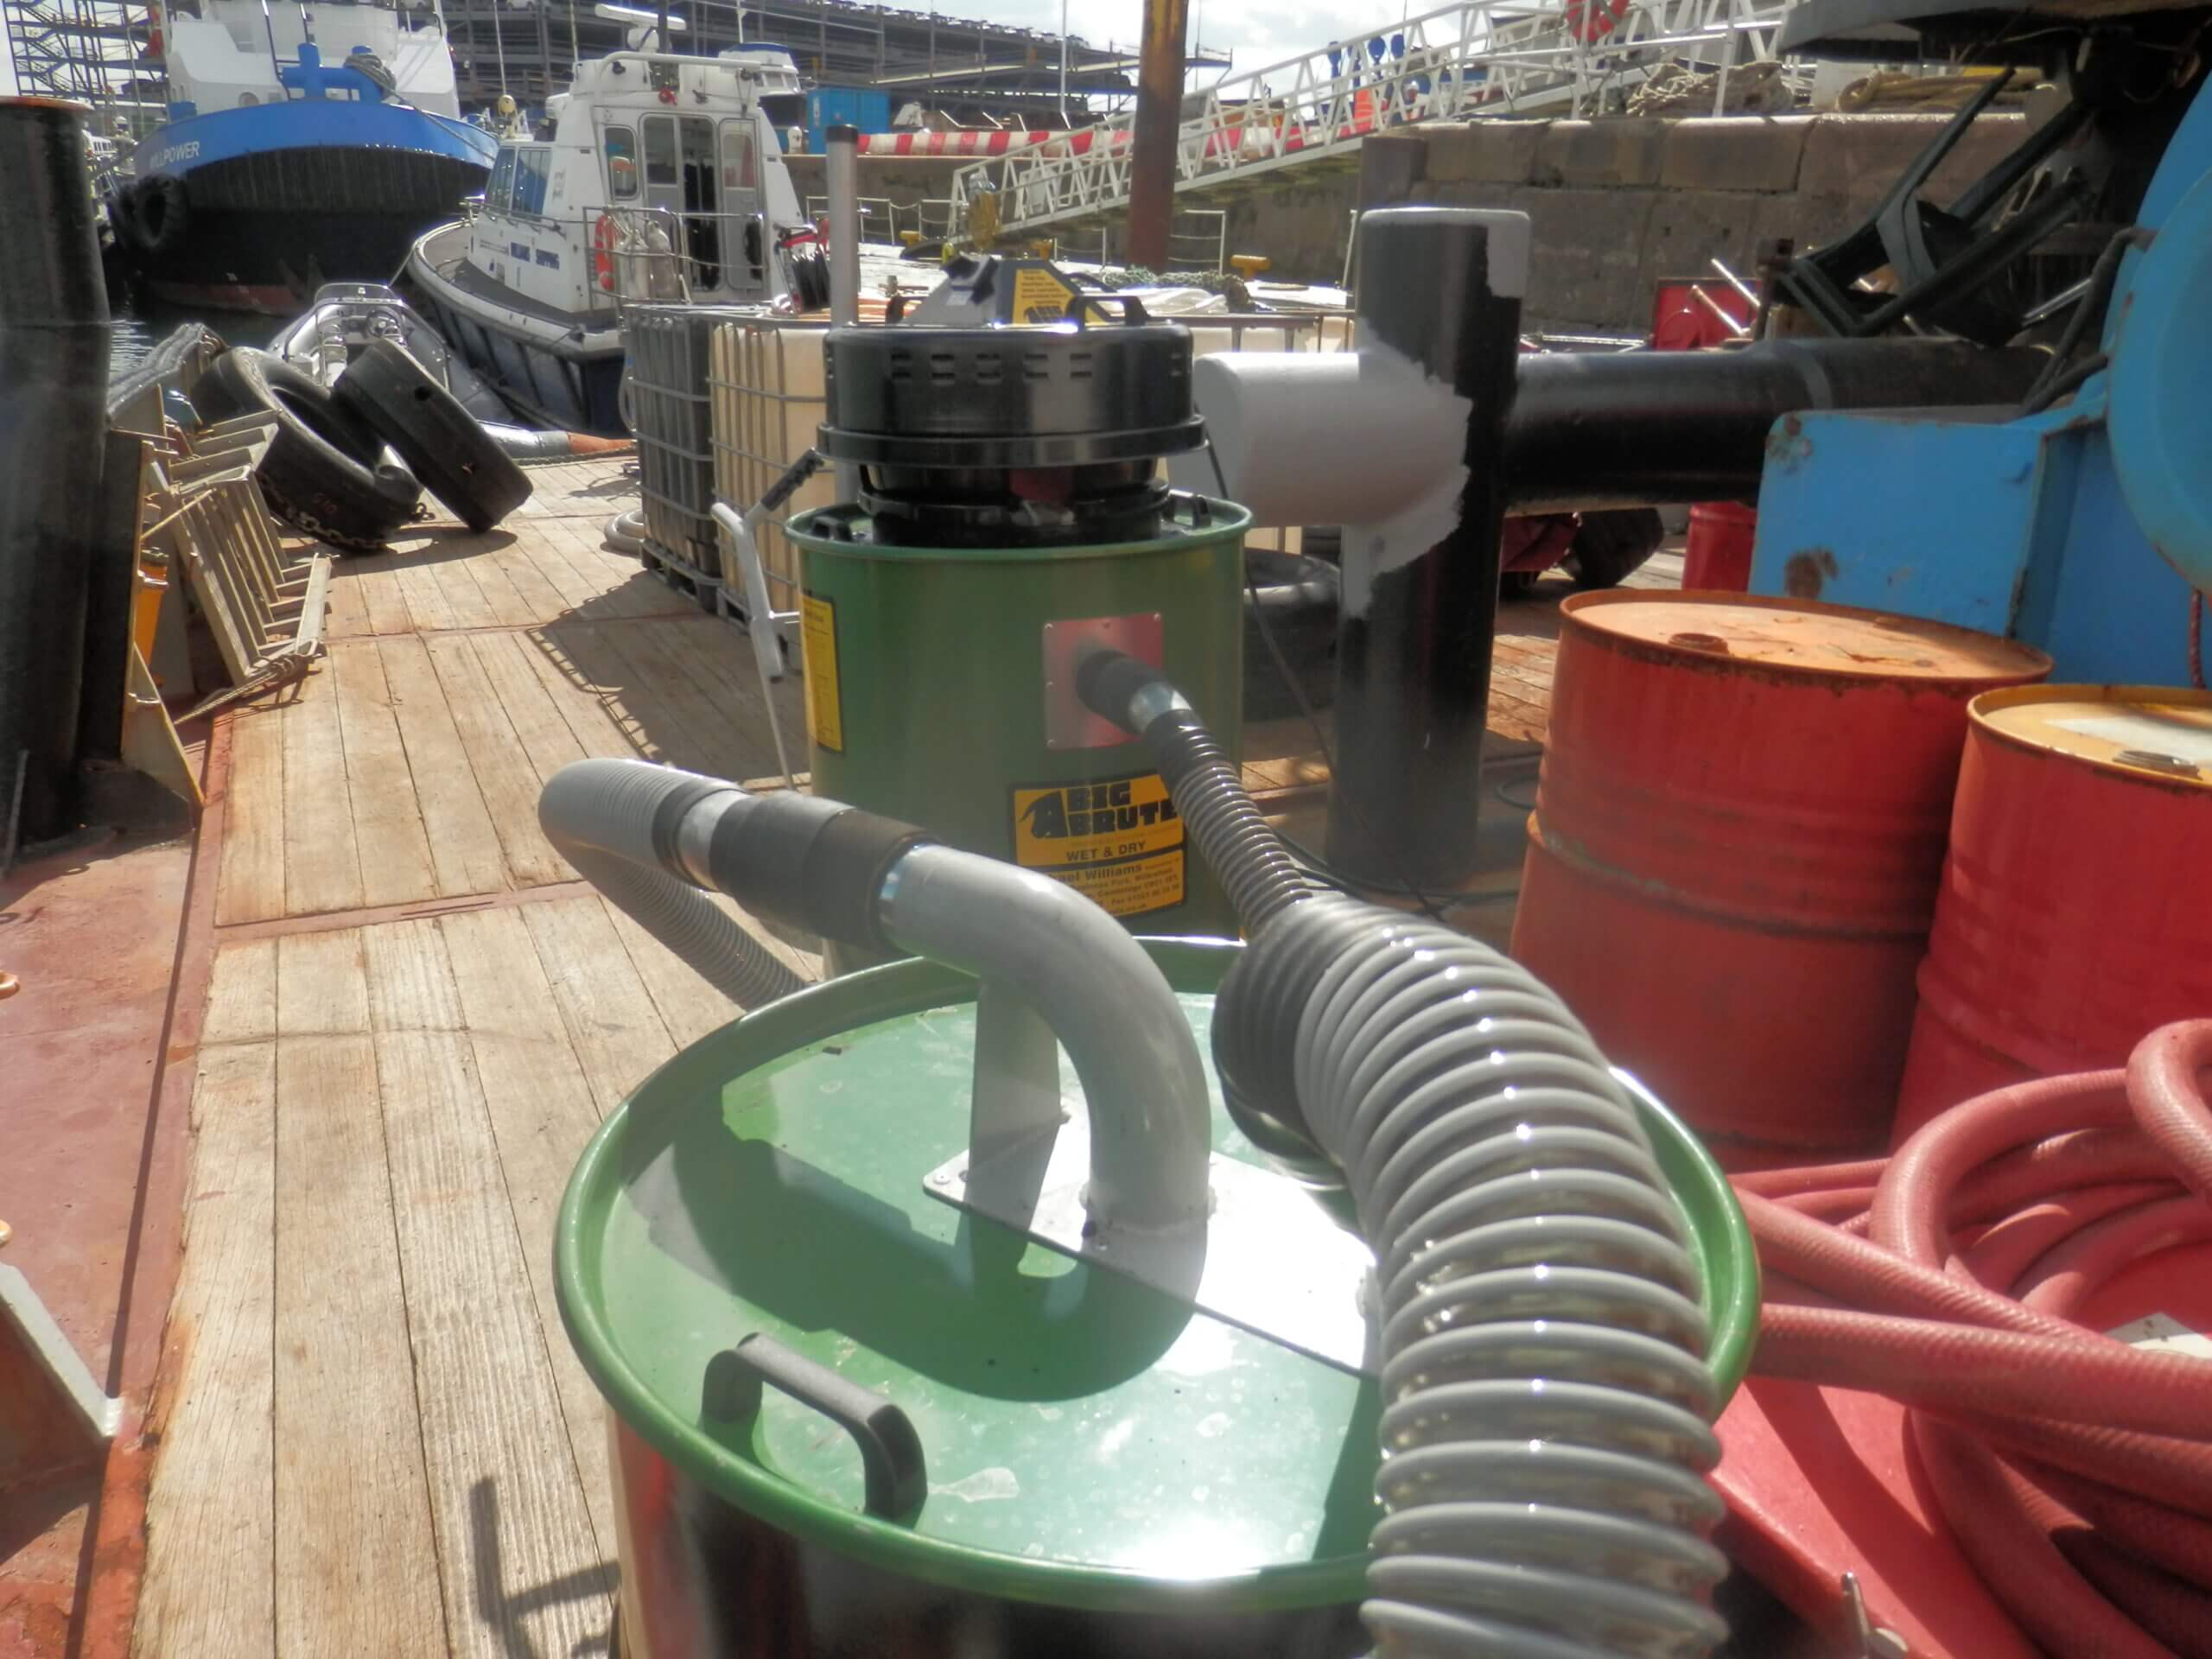 Soltron Fuel Cleaning Tanks With The Big Brute Wet & Dry Industrial Vacuum Cleaner